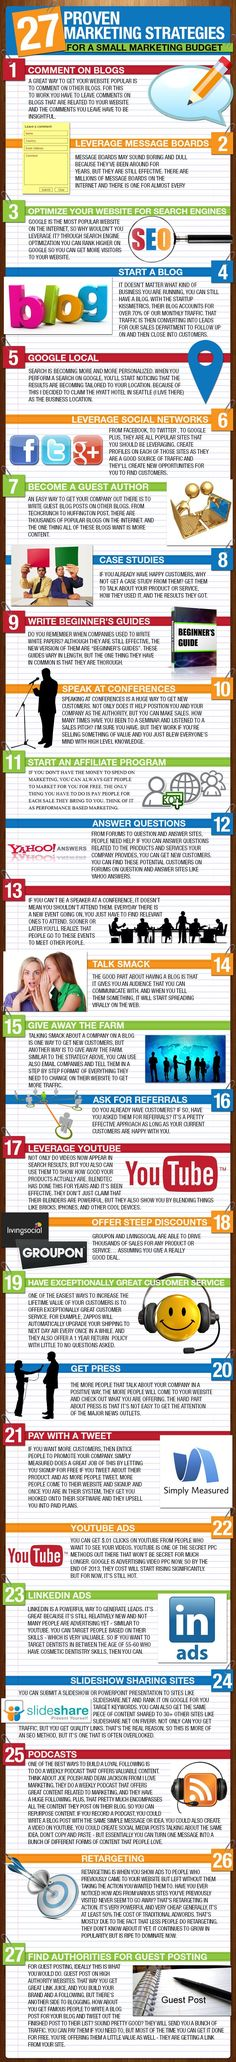 Here are 27 Proven Marketing Strategies that you can start implementing today to get more traffic. All of these methods work and have been tested with real results. This InfoGraphic is actually just a preview of the real report that you can download at http://crawfordandobrien.com. Traffic strategy #27 is one of the most influential methods if done properly. Reach out to people on http://findpeopleonplus.com and search for people in Google+ communities.